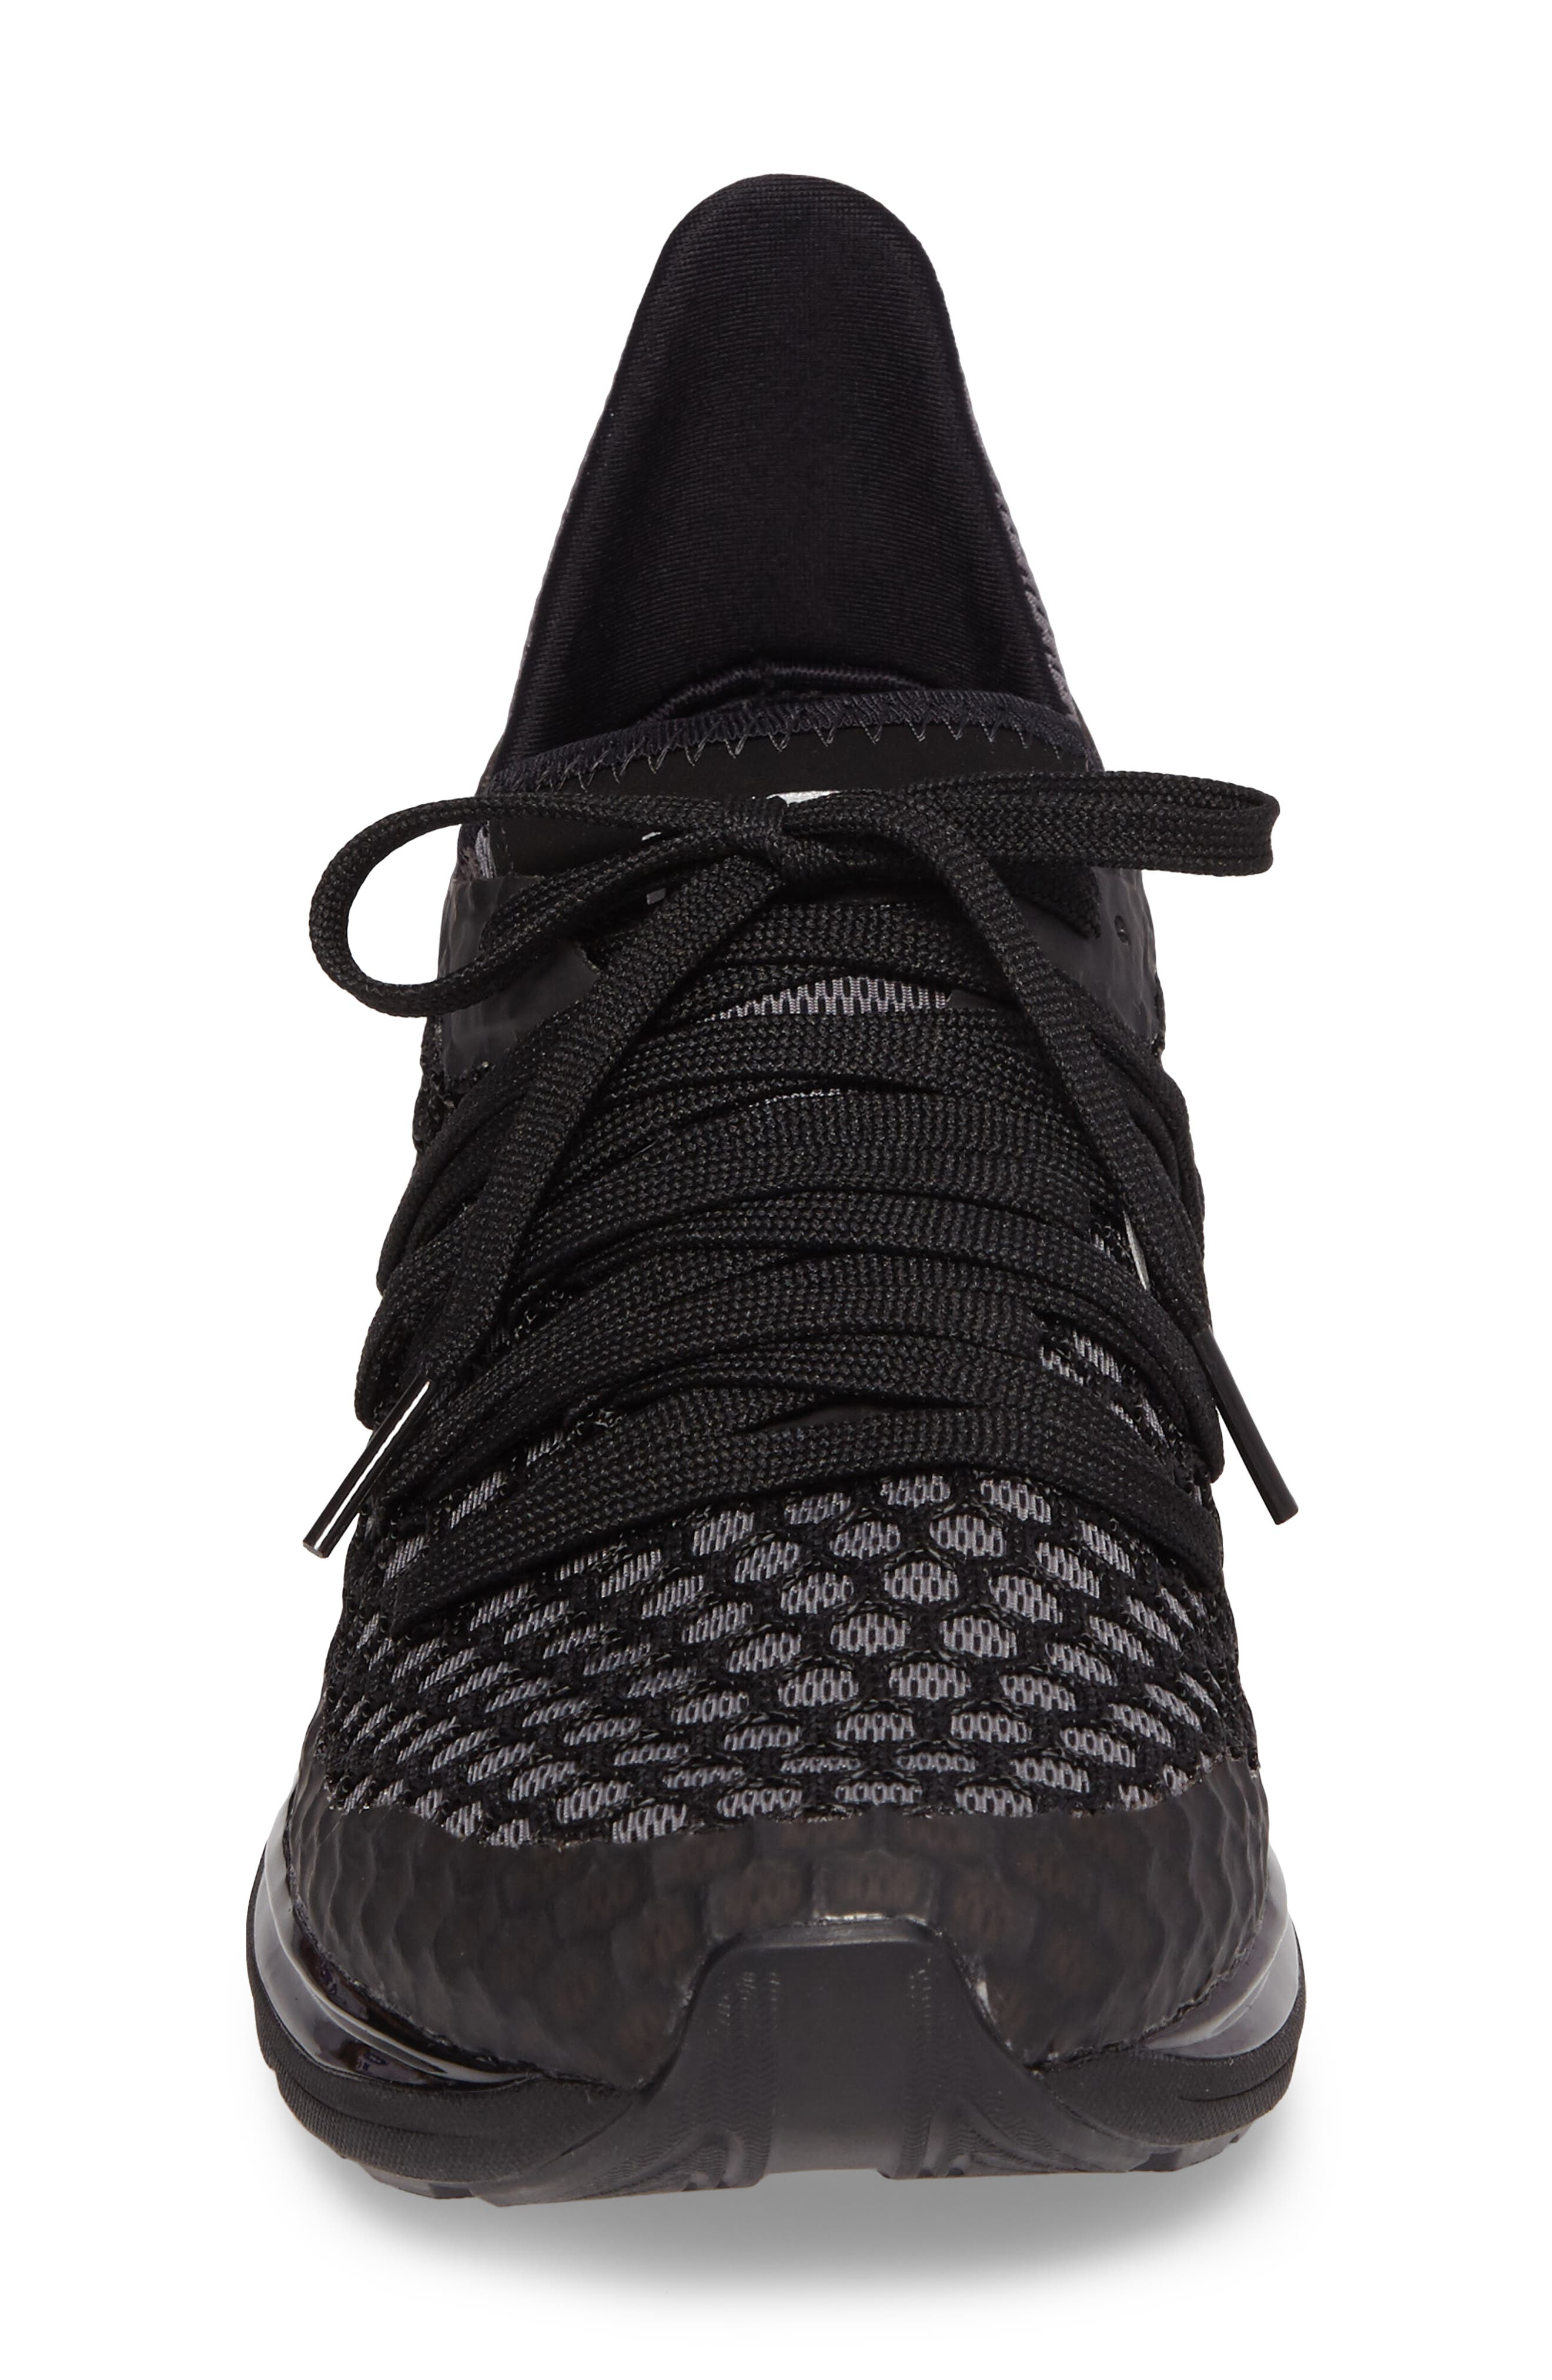 PUMA,                             Ignite Limitless Netfit Running Shoe,                             Alternate thumbnail 4, color,                             001